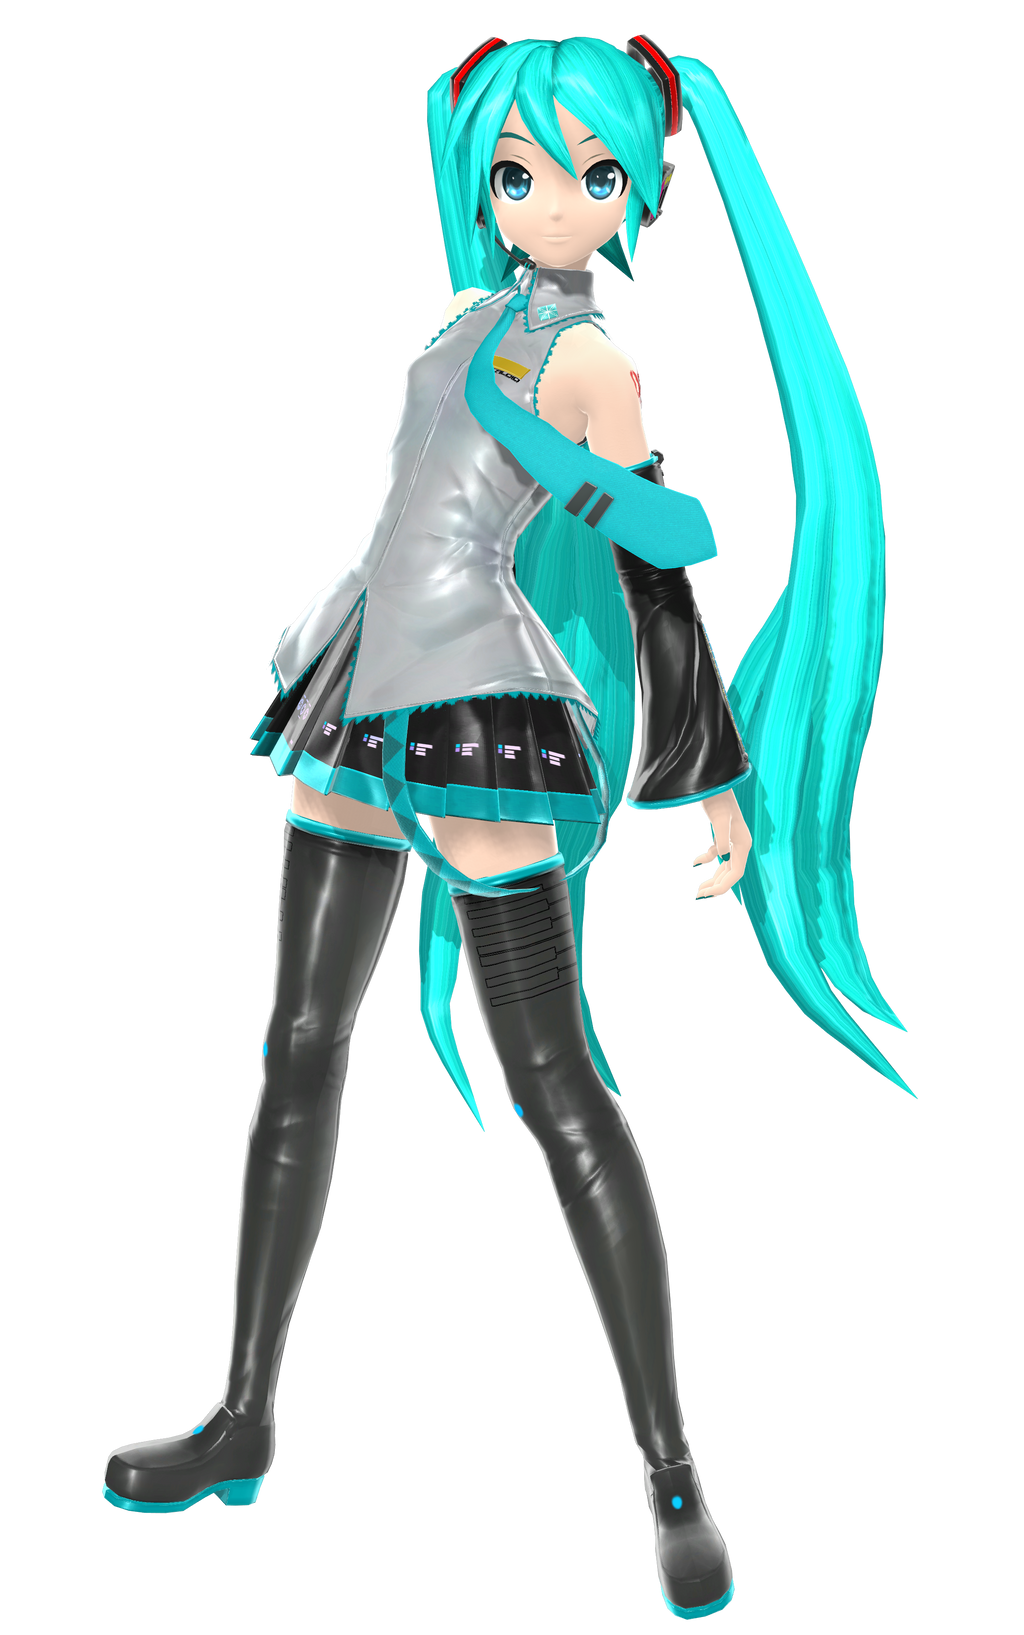 Pda Hatsune Miku Sega   By Johnjan On Deviantart